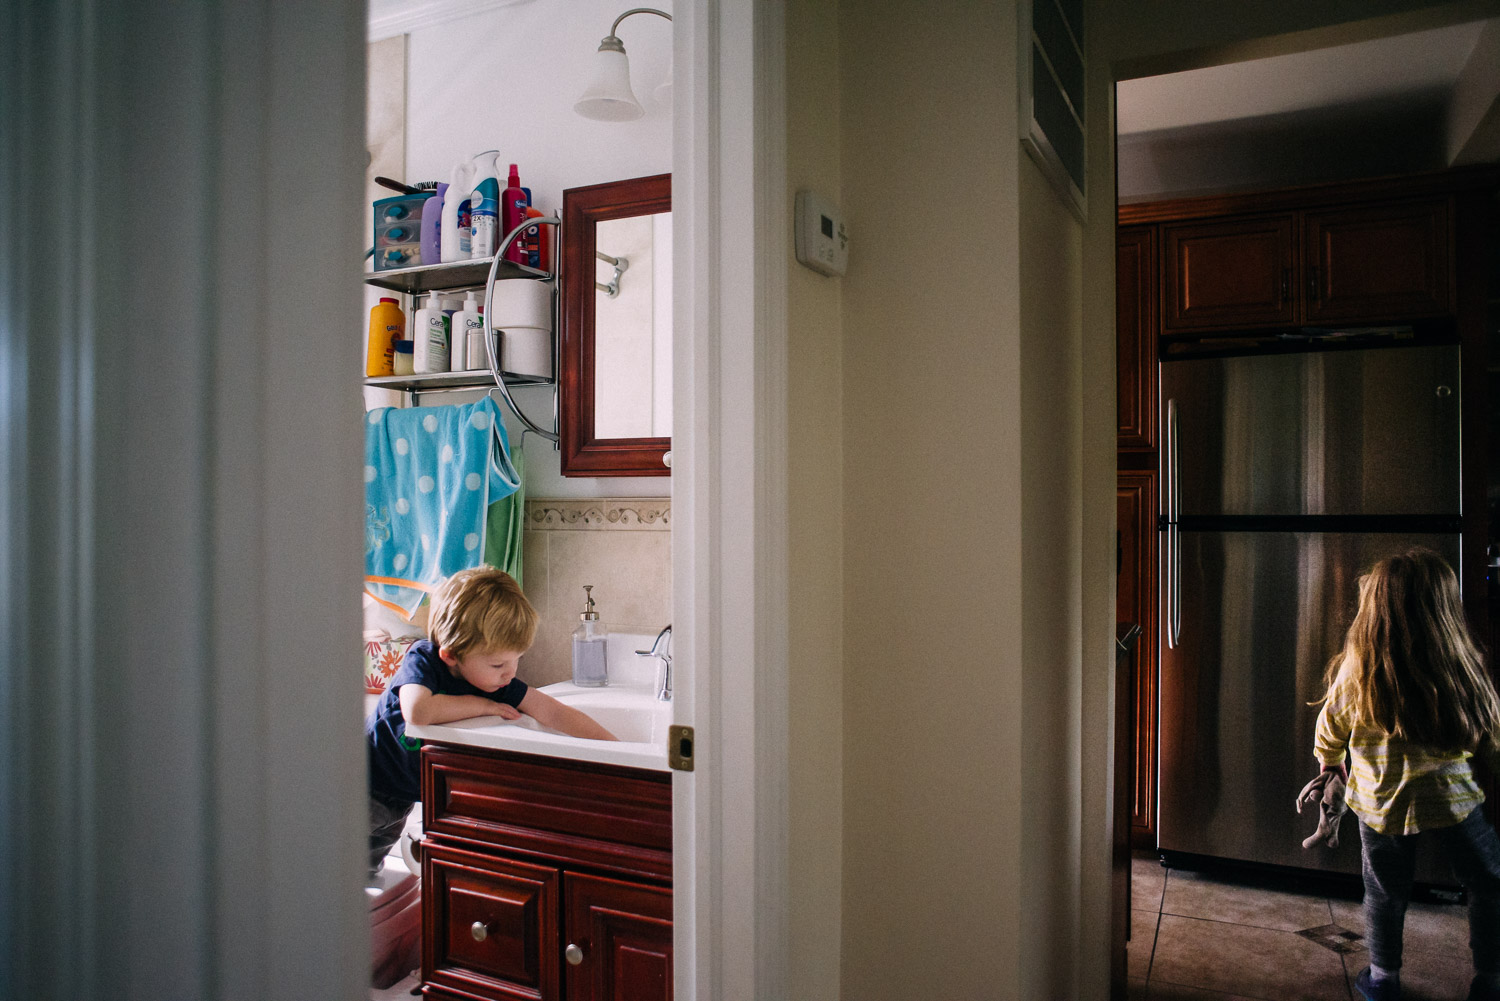 Little boy in bathroom and sister in kitchen.